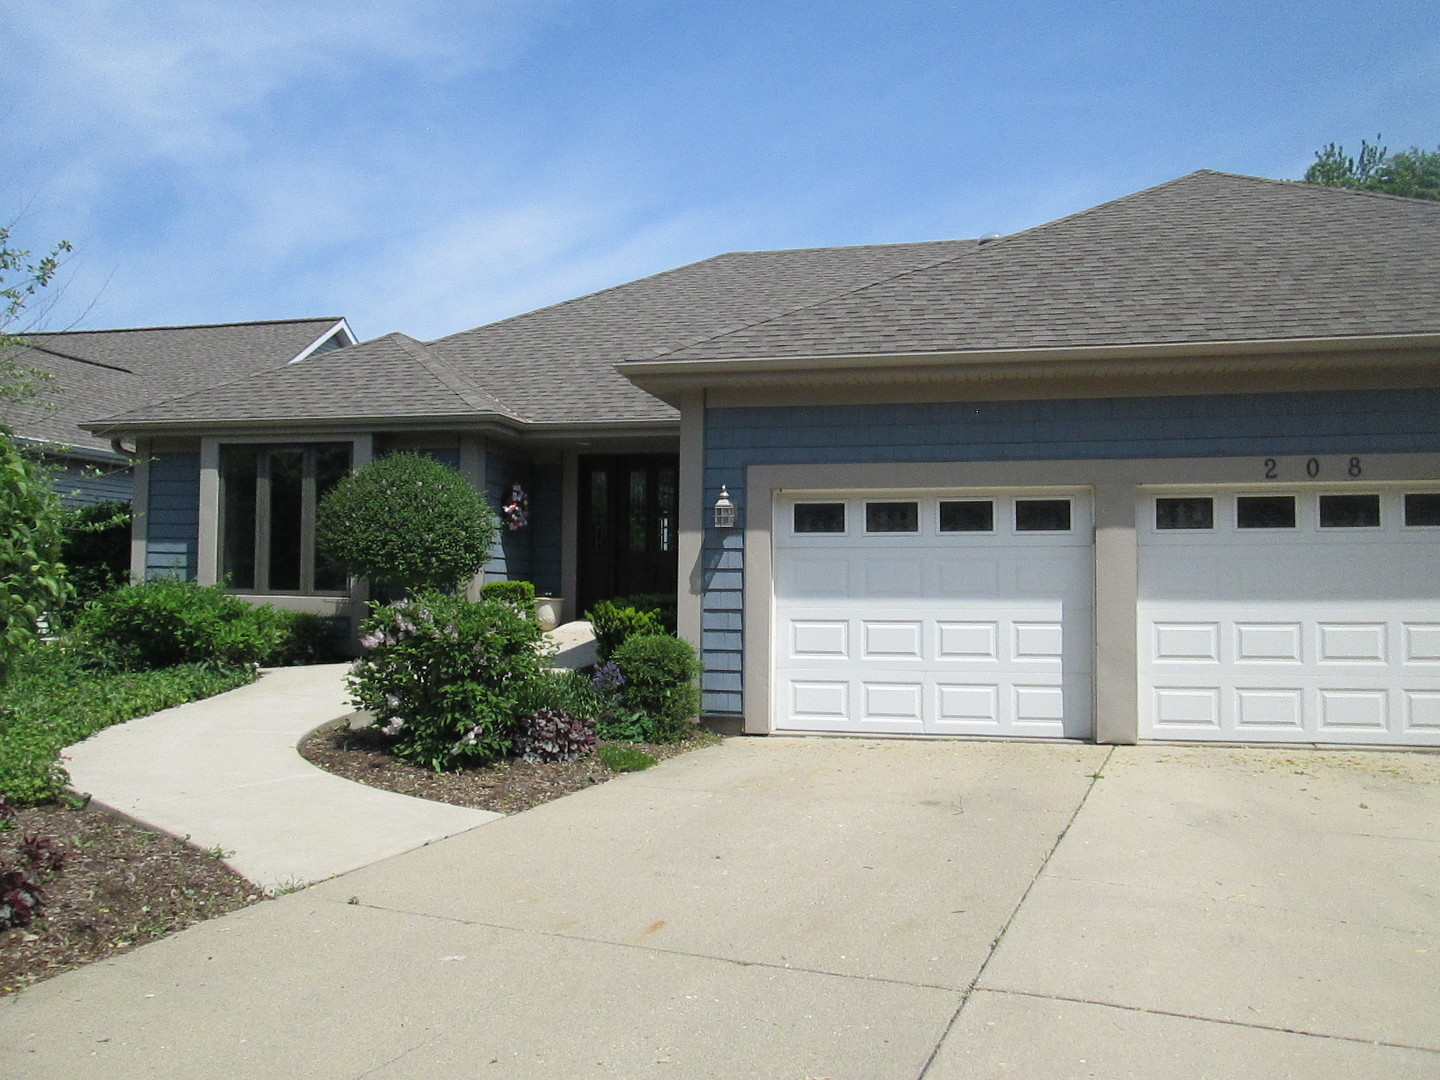 208 West Belvidere Road, Grayslake, Illinois 60030